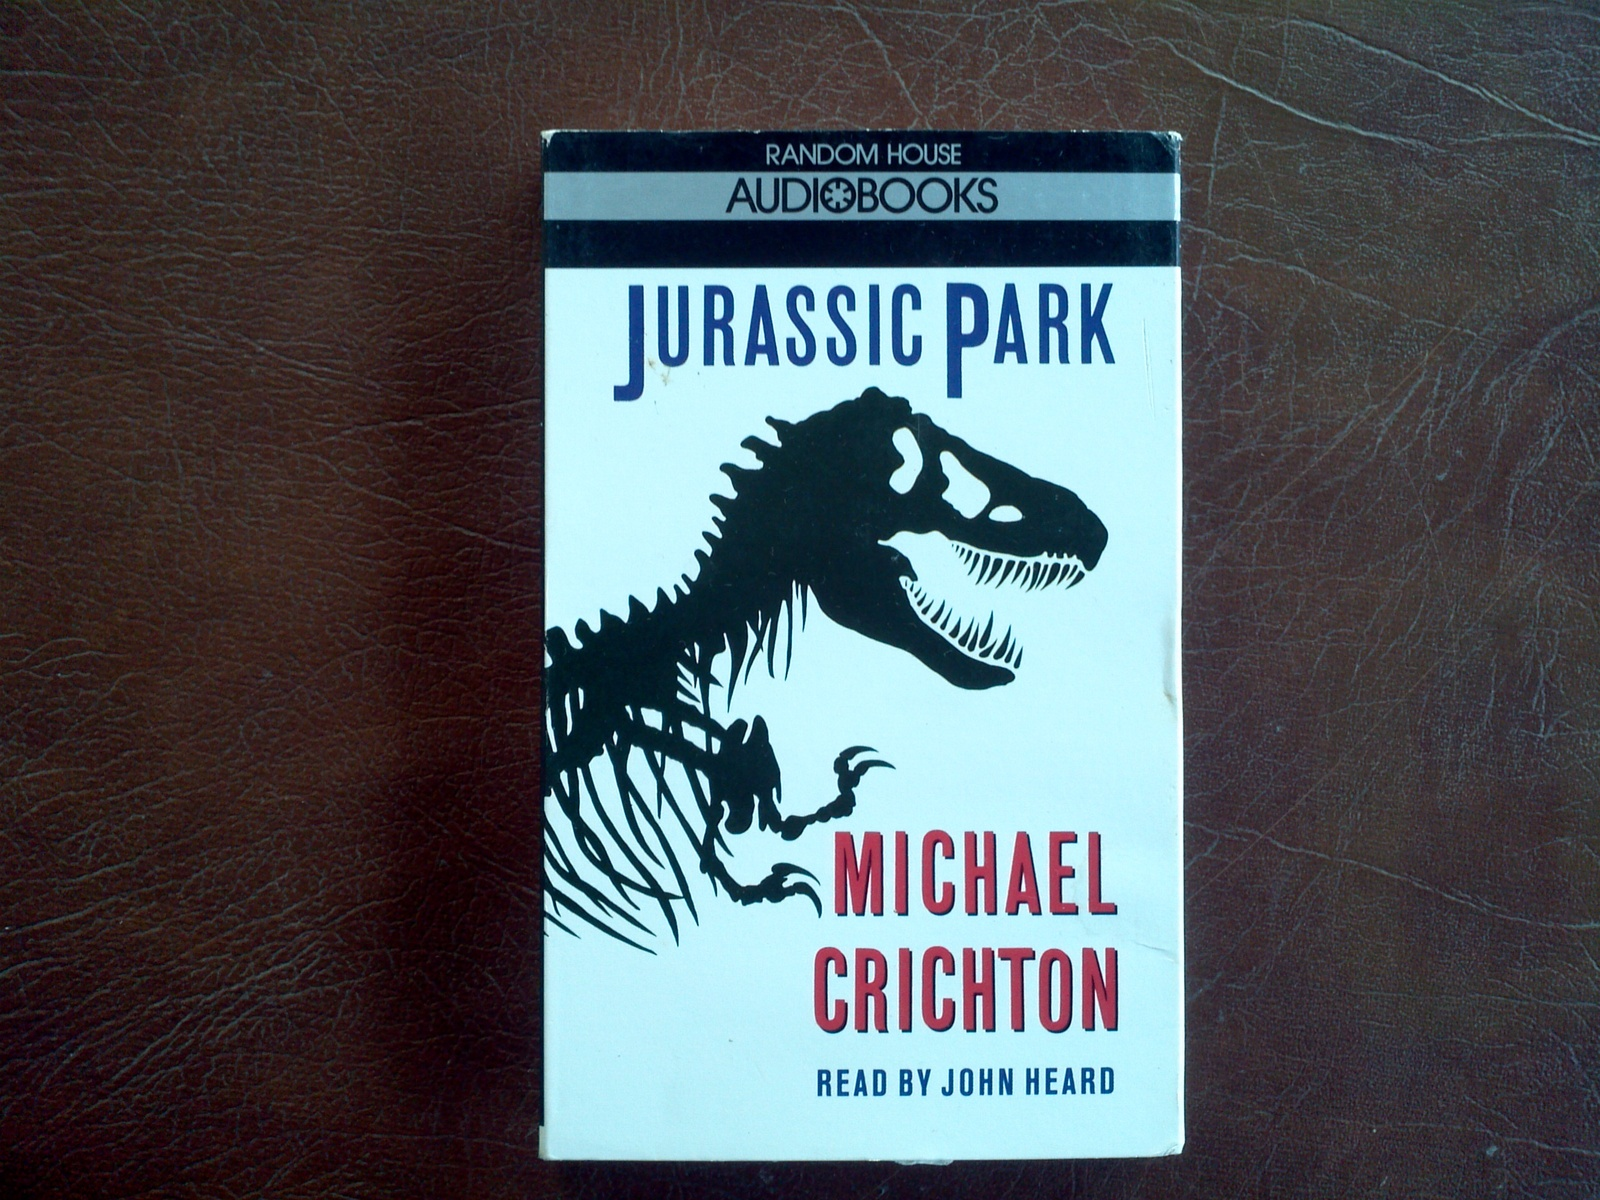 a summary of jurassic park a novel by michael crichton Crichton's novels, including jurassic park, have been described by the guardian as harking back to the fantasy adventure fiction of sir arthur conan doyle, jules verne, edgar rice burroughs, and edgar wallace, but with a contemporary spin, assisted by cutting-edge technology references made.